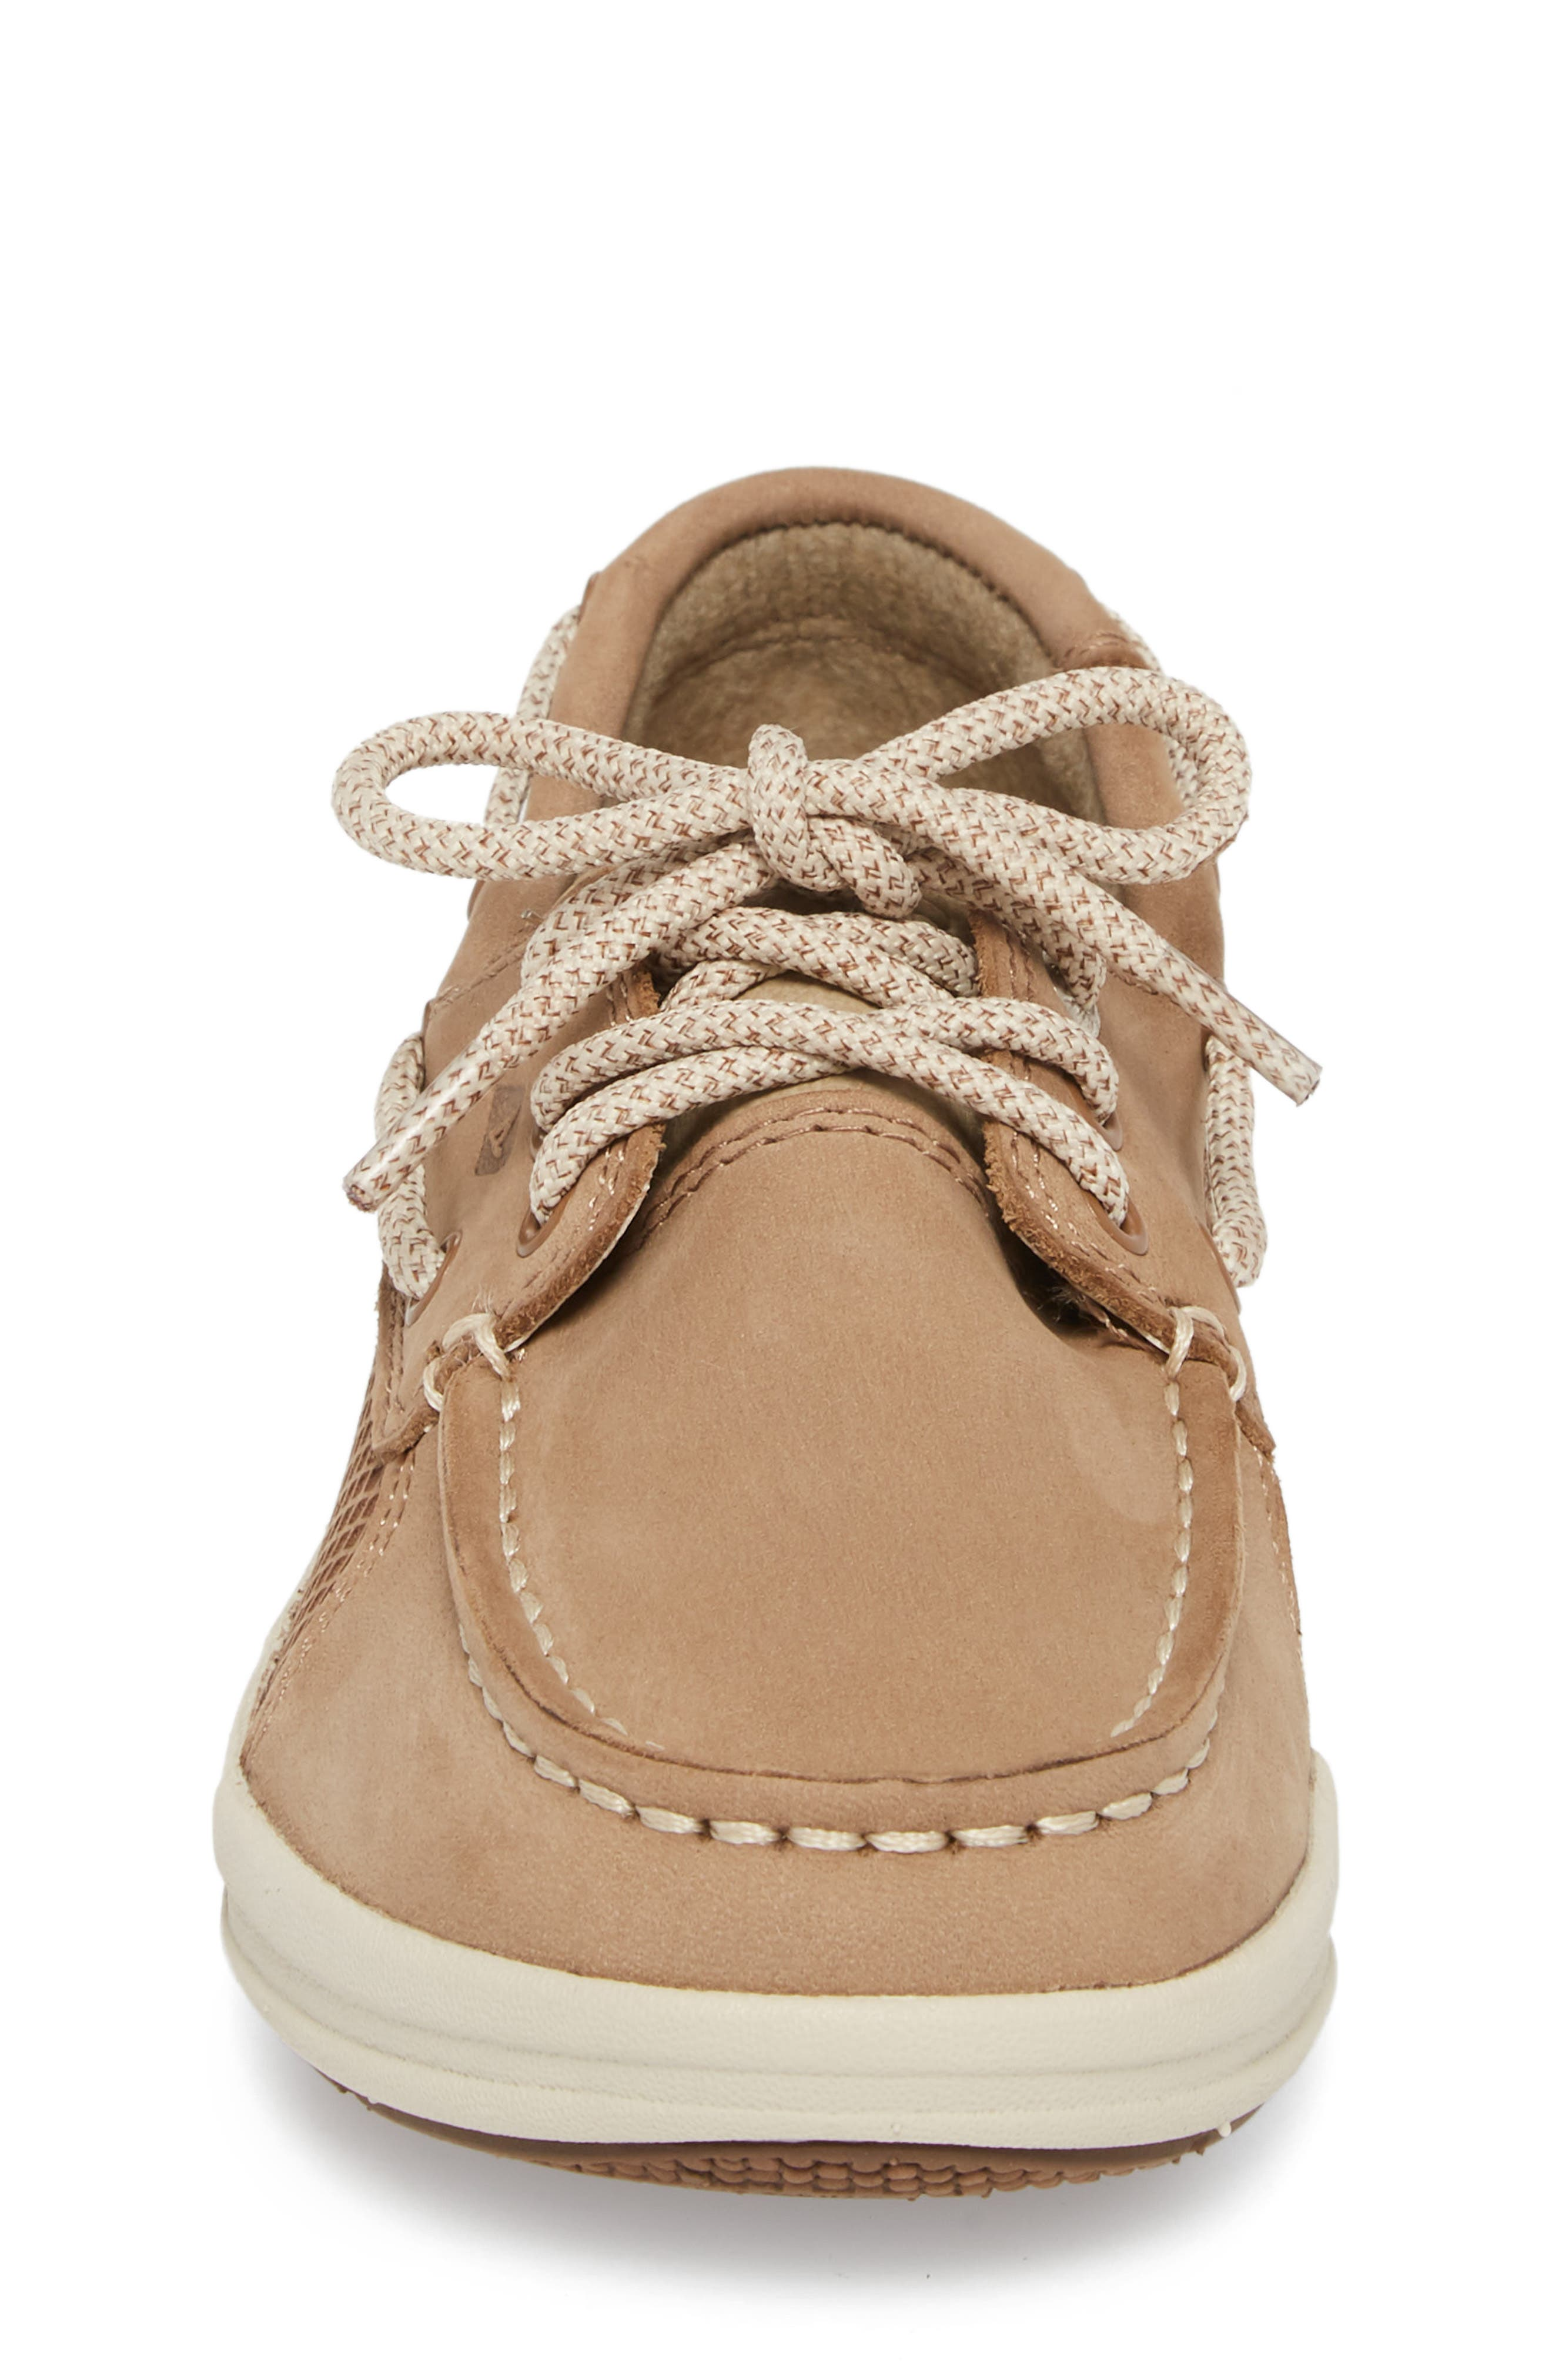 Sperry Gamefish Boat Shoe,                             Alternate thumbnail 4, color,                             270